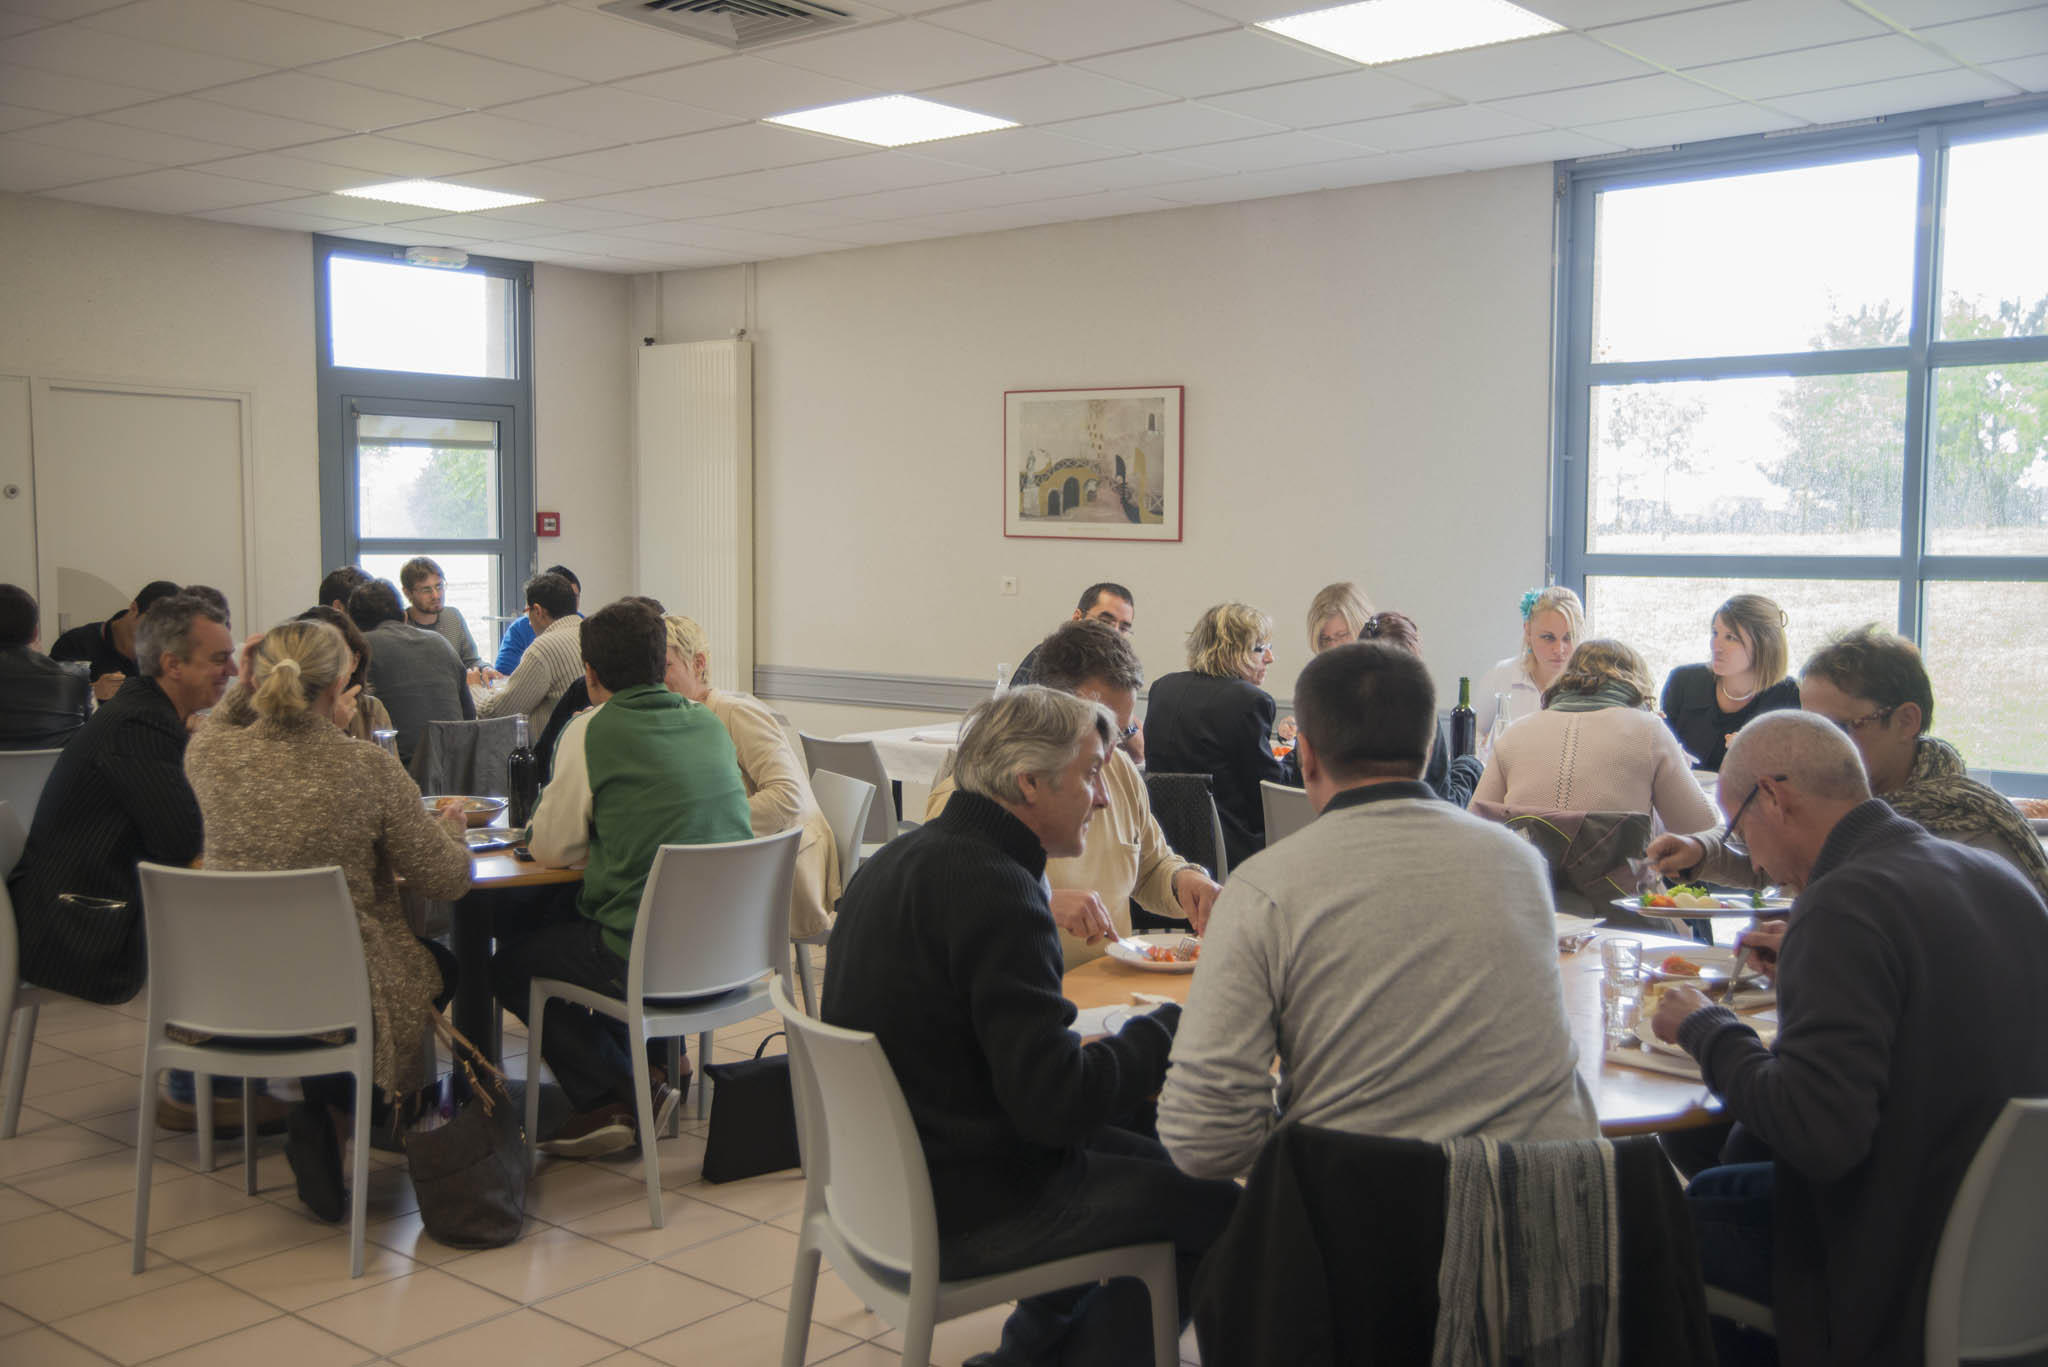 Restauration Institut formation Meslay